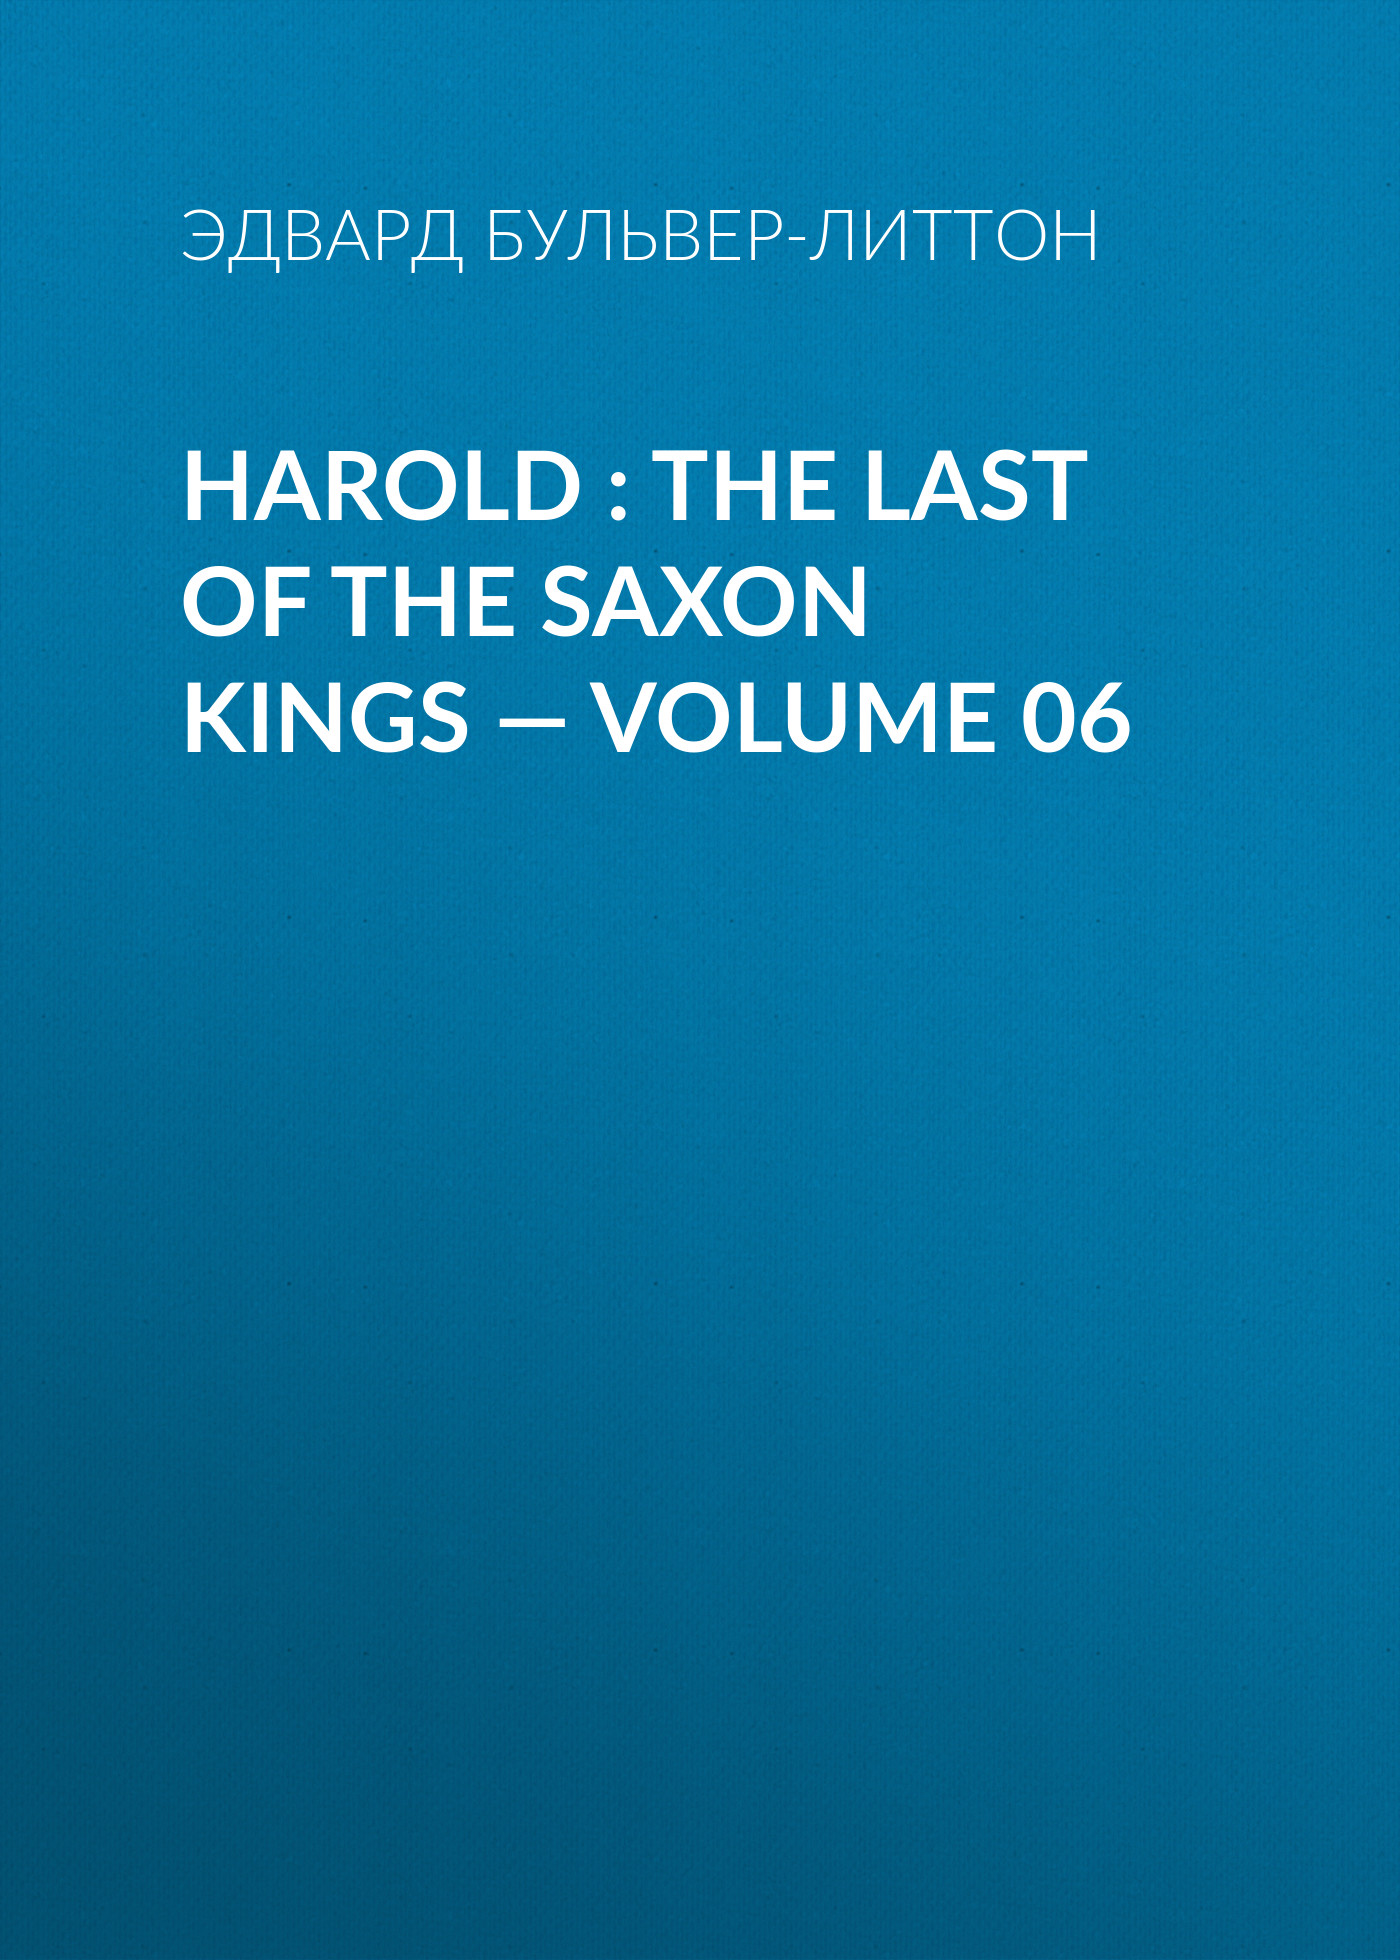 Эдвард Бульвер-Литтон Harold : the Last of the Saxon Kings — Volume 06 эдвард бульвер литтон harold the last of the saxon kings volume 06